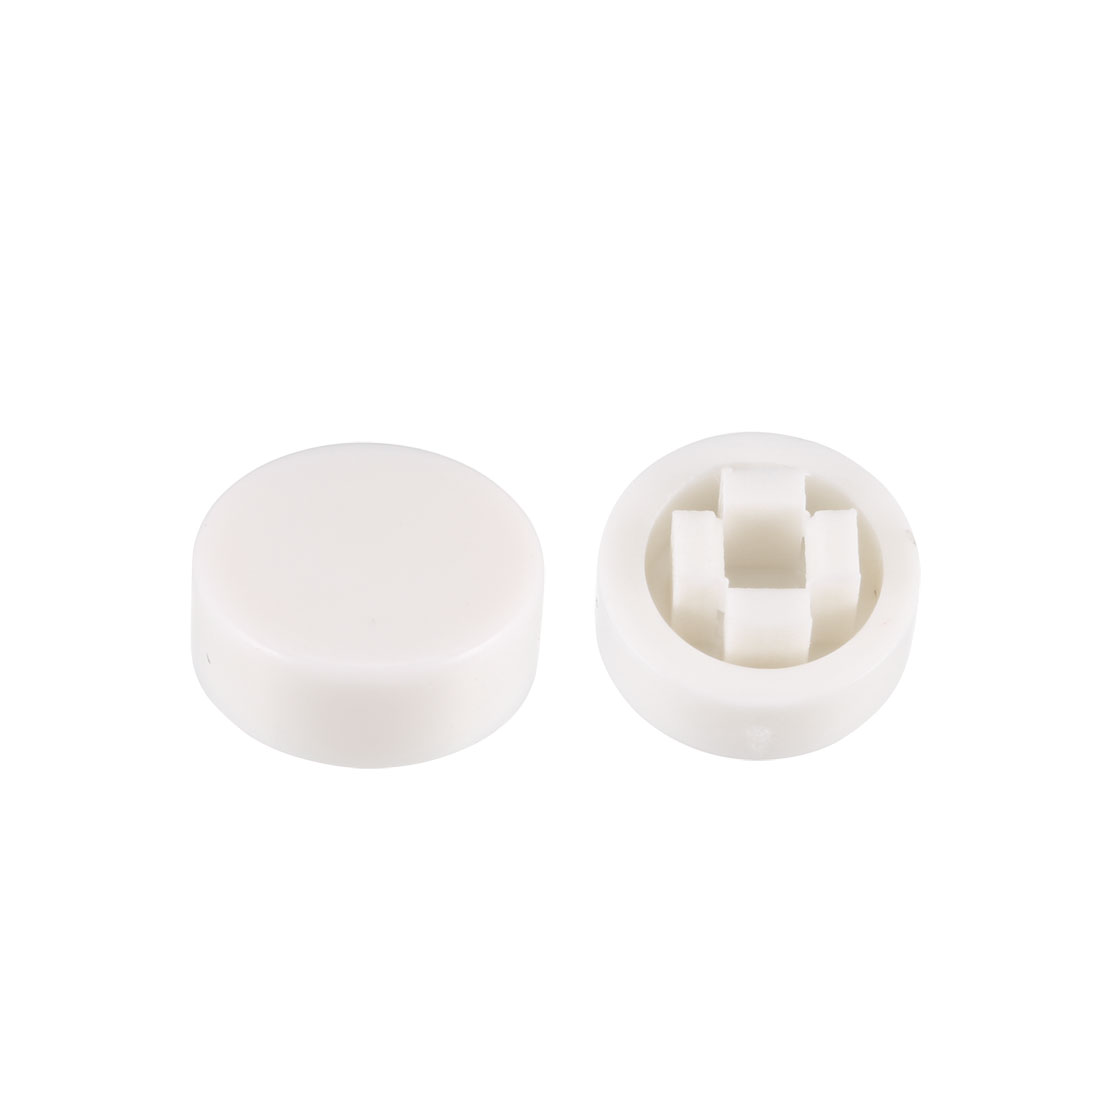 20Pcs Pushbutton Tactile Switch Caps Cover White for 6x6x7.3mm Tact Switch